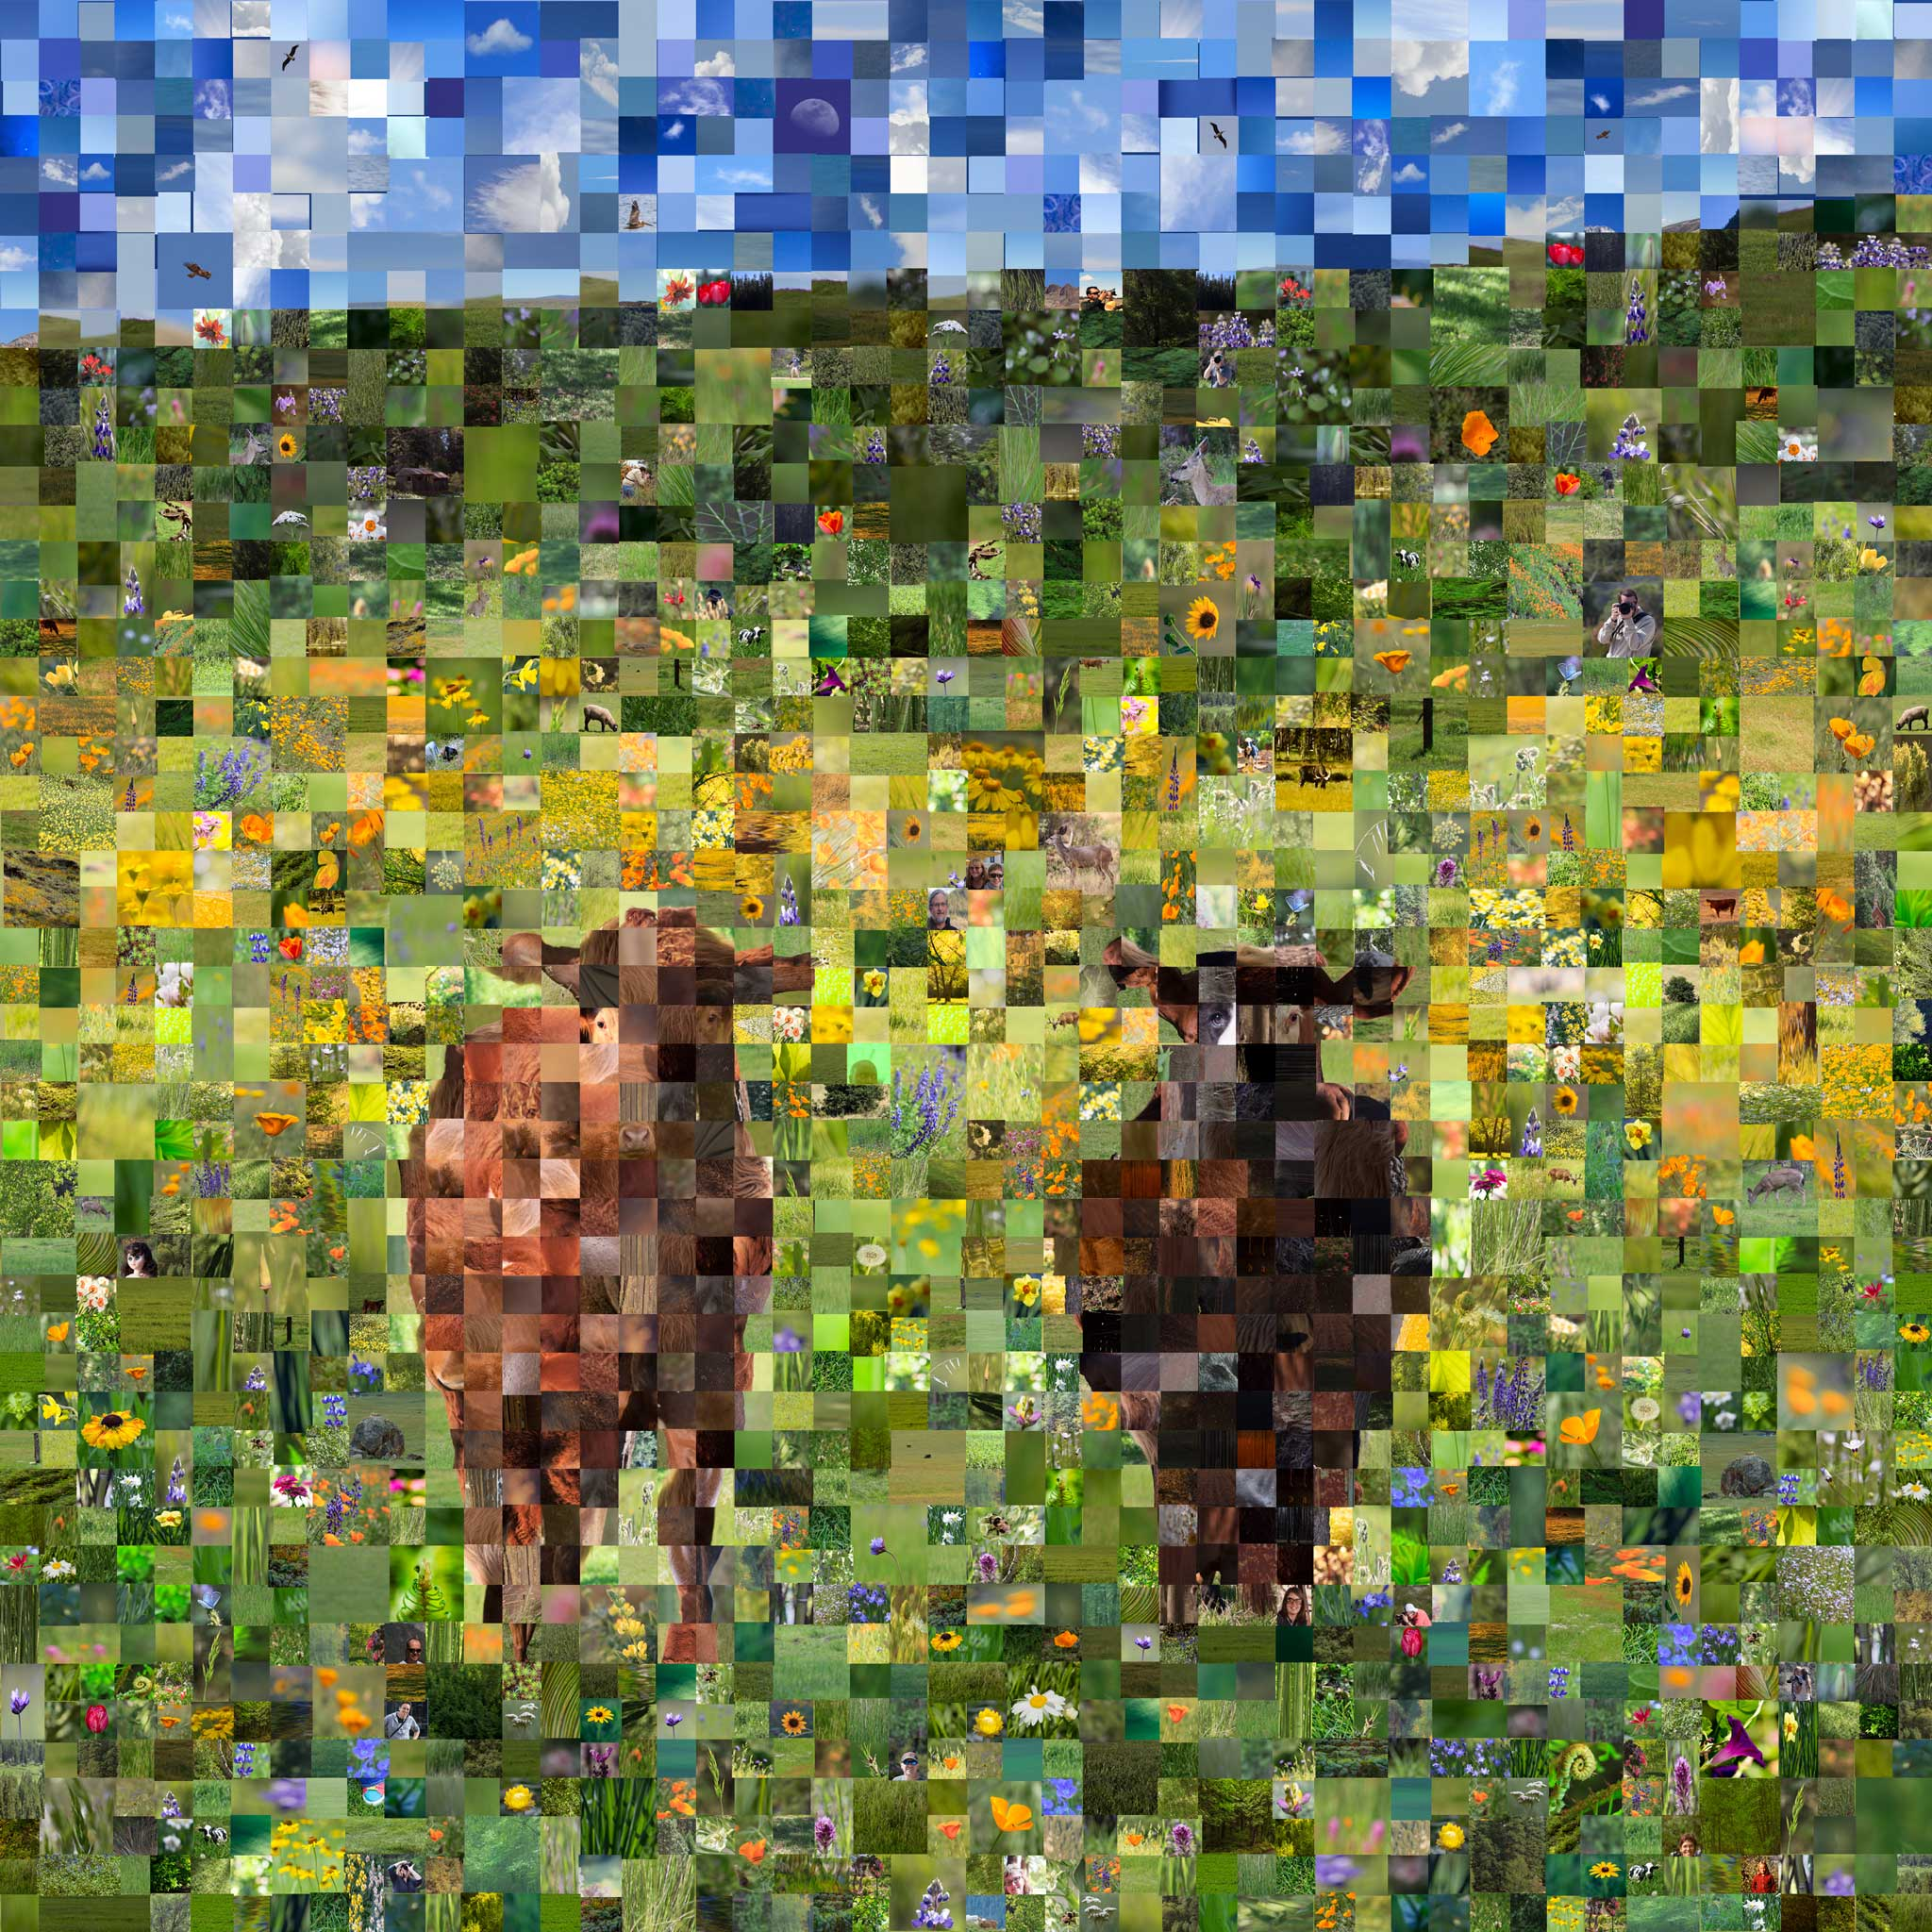 mosaic landscape with cows and flowers